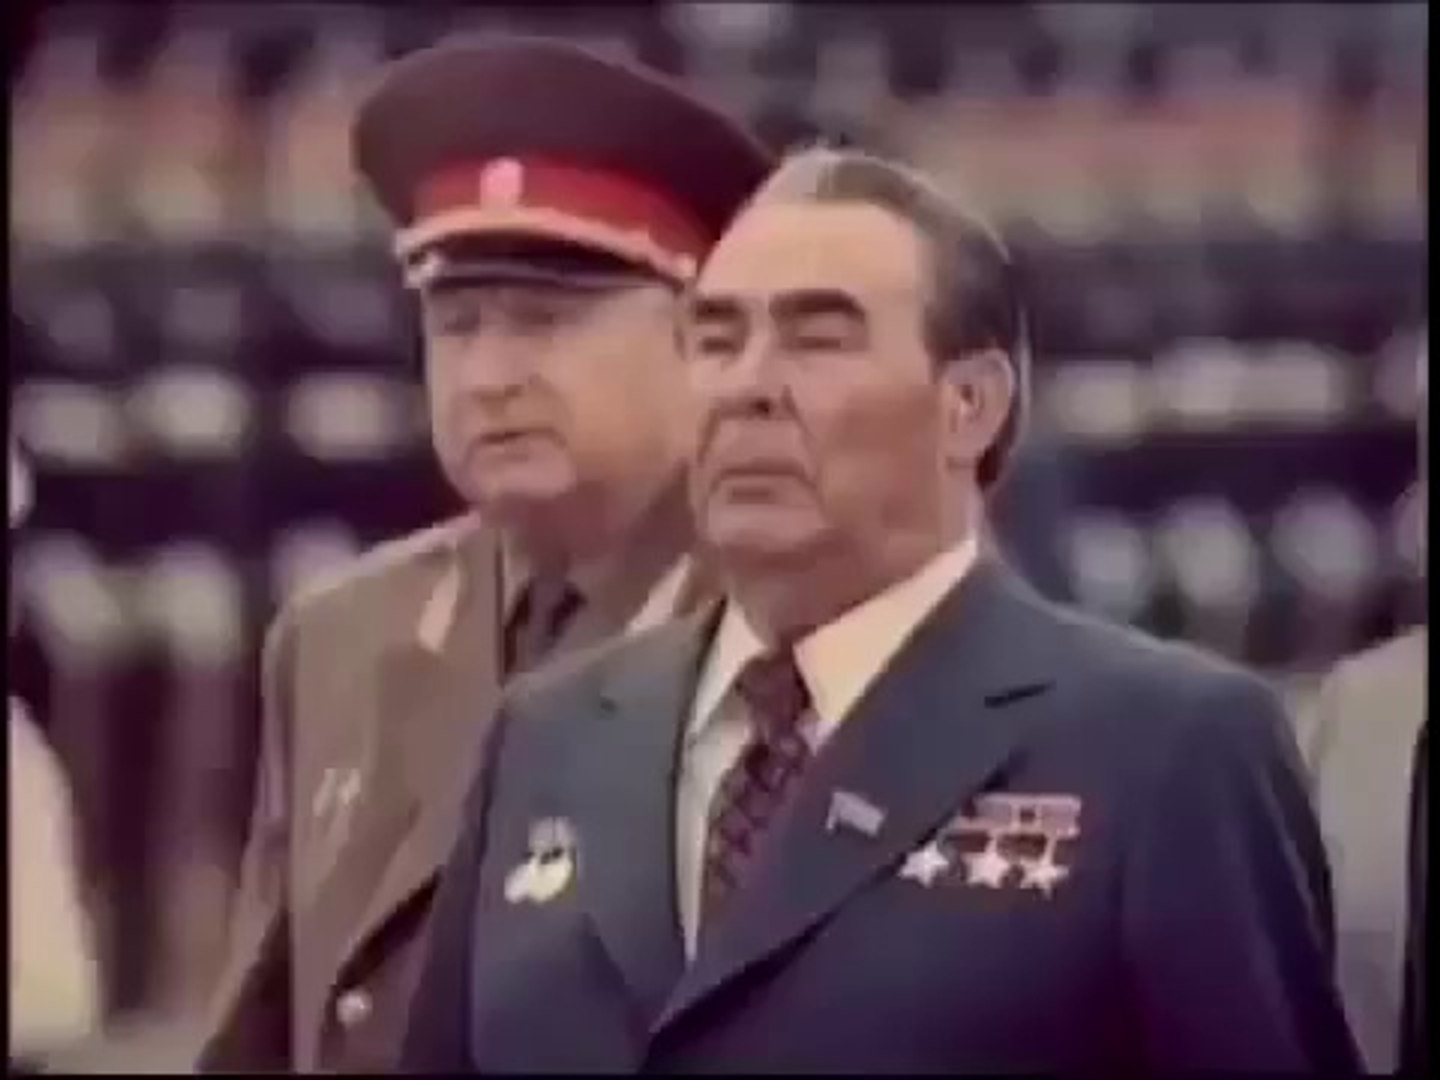 INSIDE THE KGB - TERROR OF THE SOVIET UNION - Discovery/History/Military (documentary)